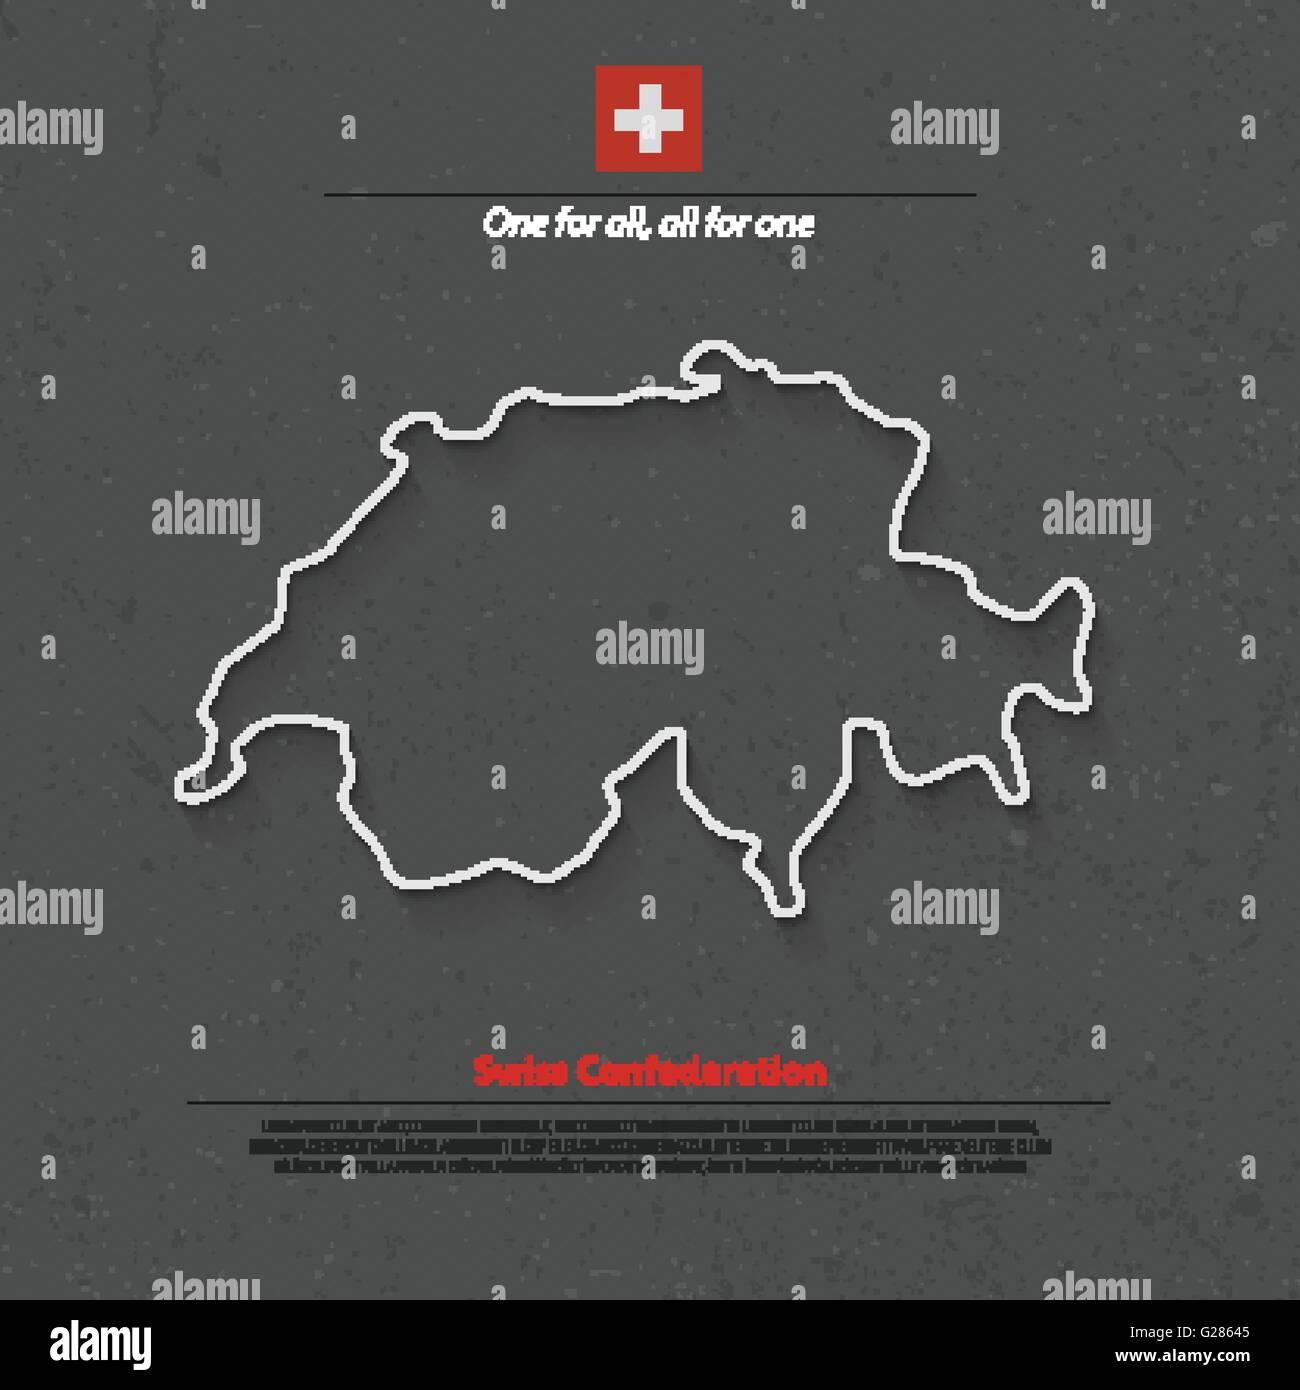 Swiss Confederation map and official flag over grunge background. vector Switzerland political map 3d illustration. - Stock Vector